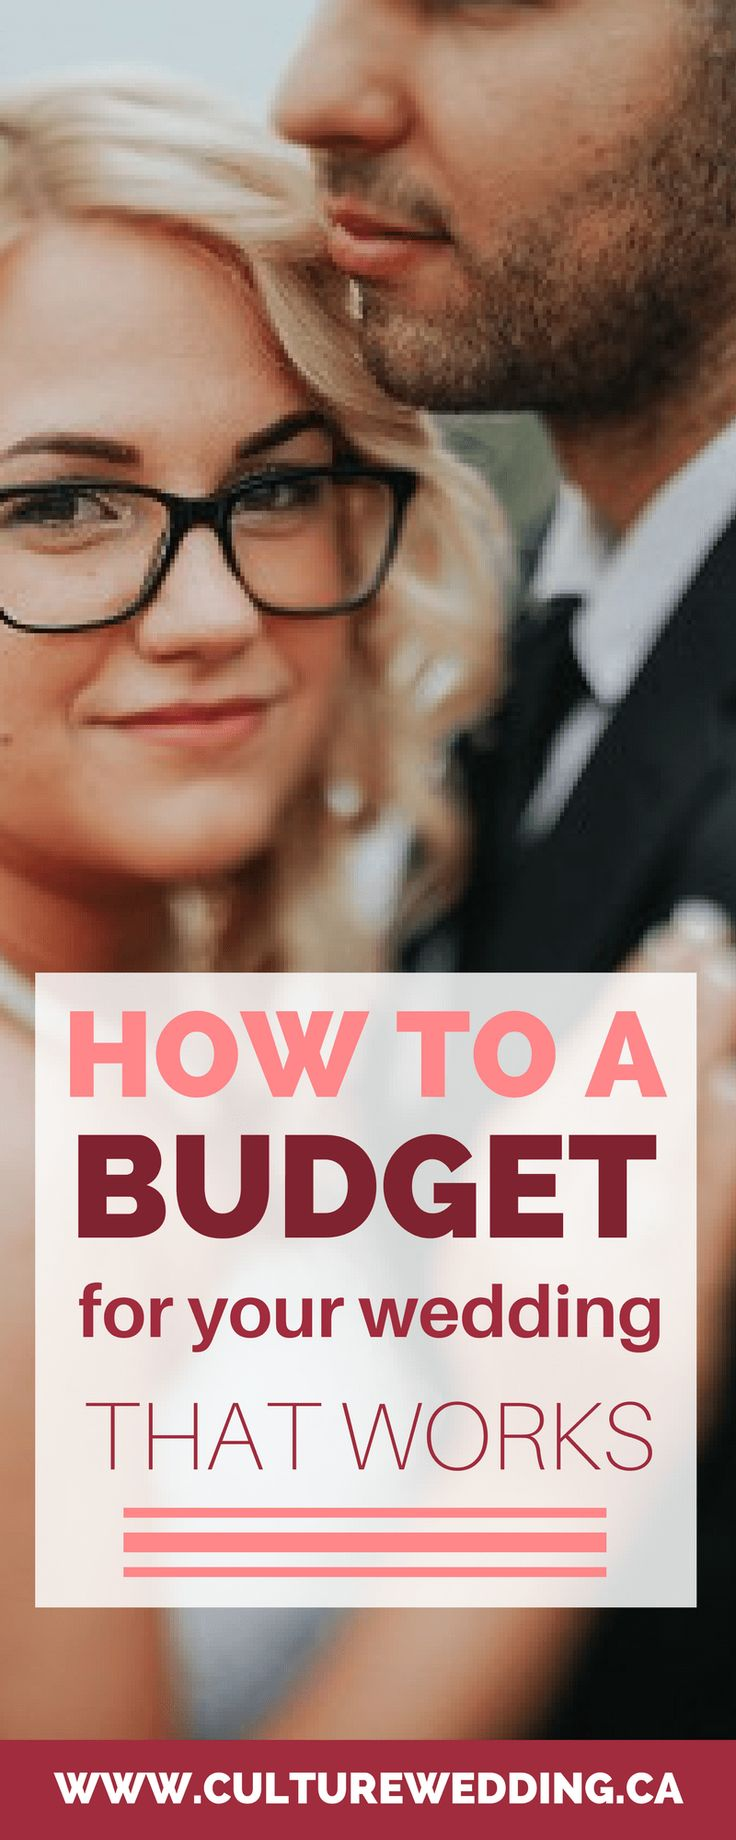 How to create a budget for your wedding that works. Frugal bride. Frugal living ideas. Saving tips. How to plan a frugal wedding